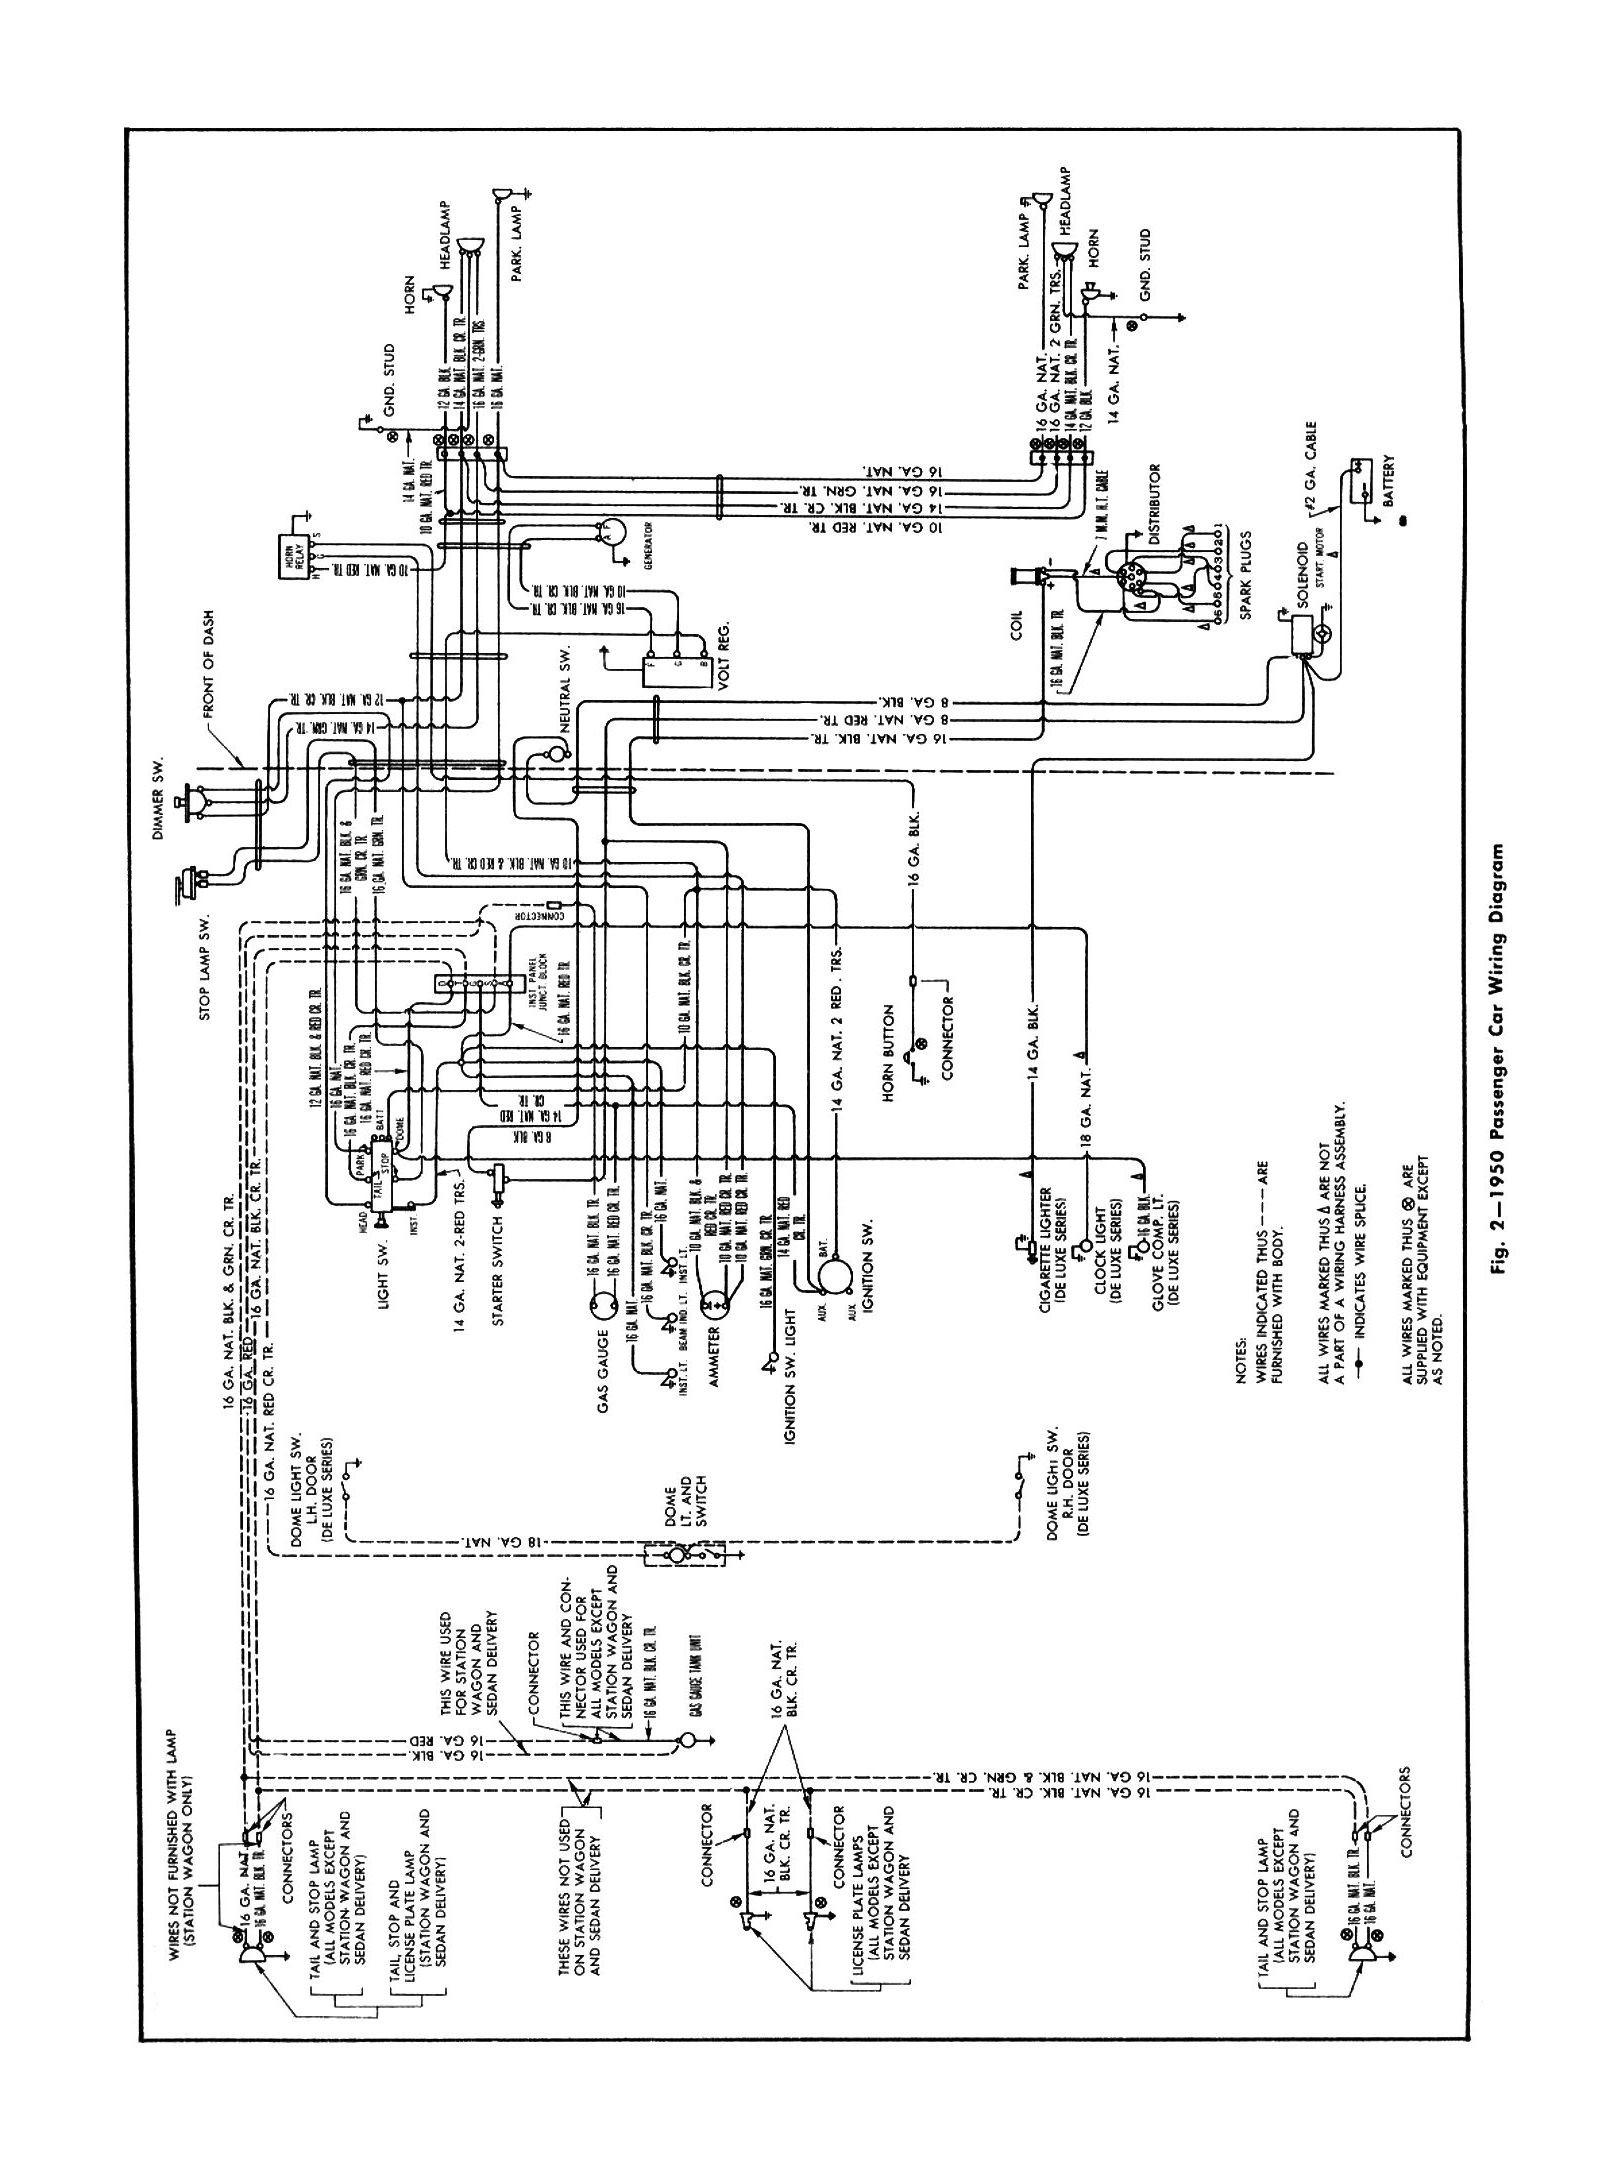 50car plymouth wiring diagram 1950 wiring diagrams instruction 1948 plymouth wiring harness at gsmx.co